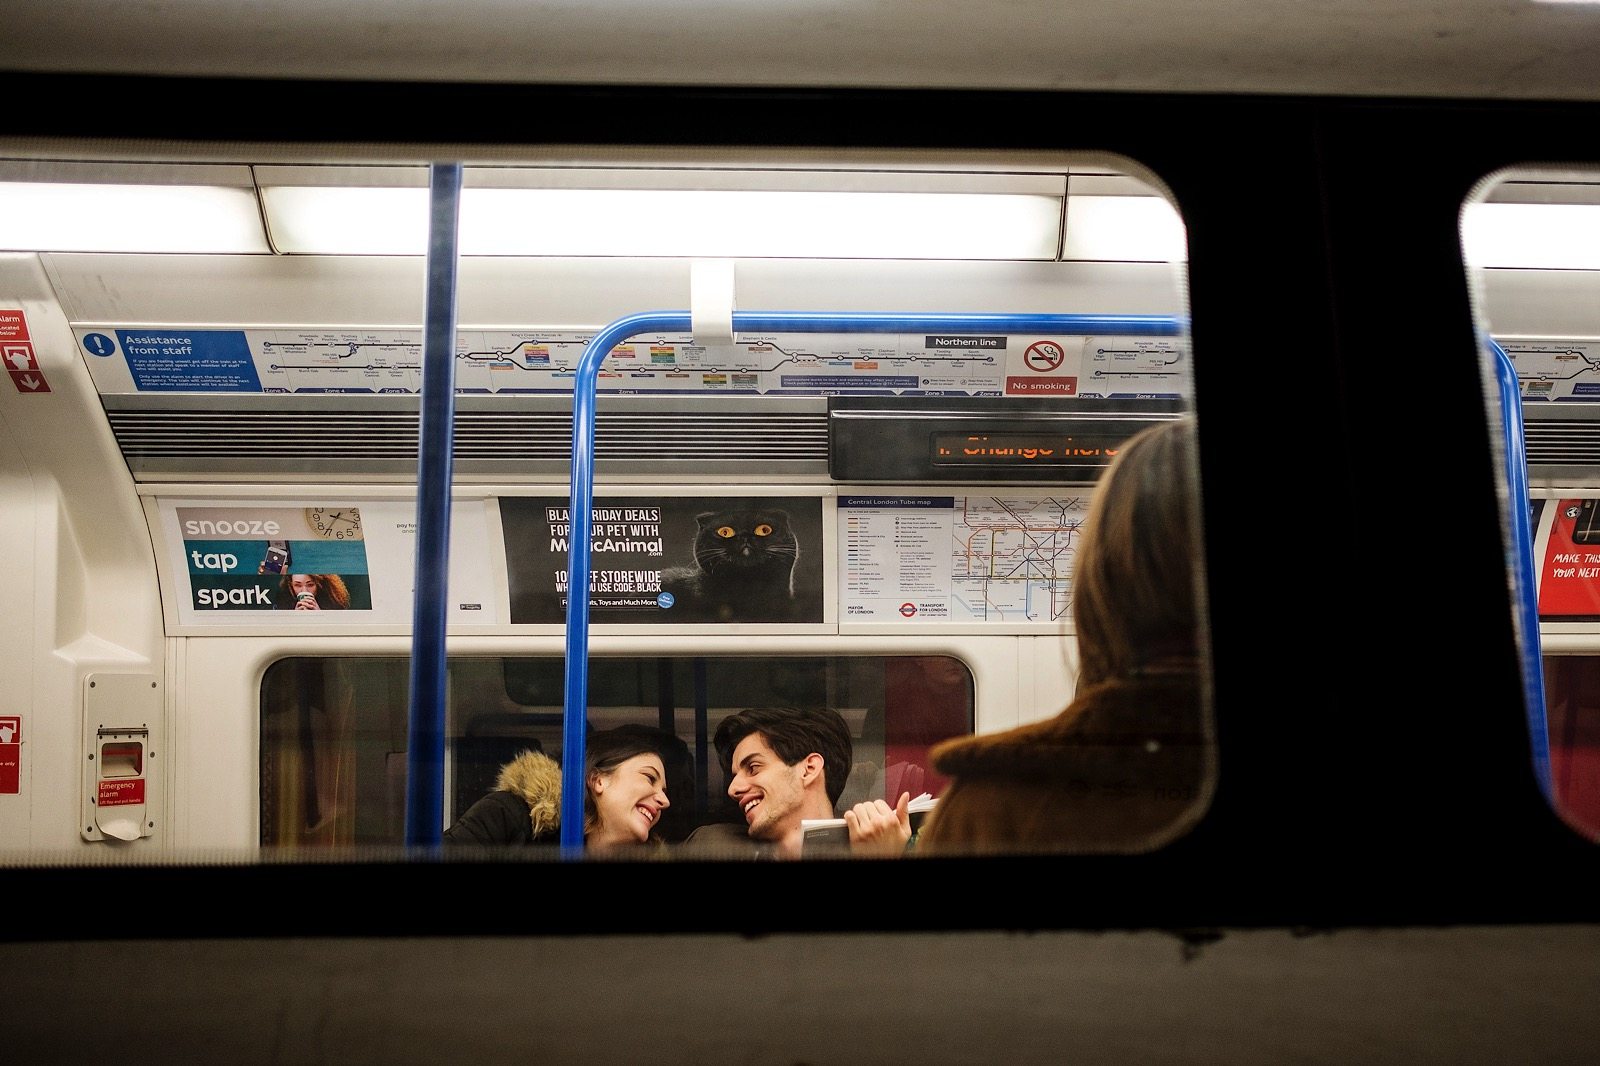 Two people laughing and looking at each other on the London Underground.